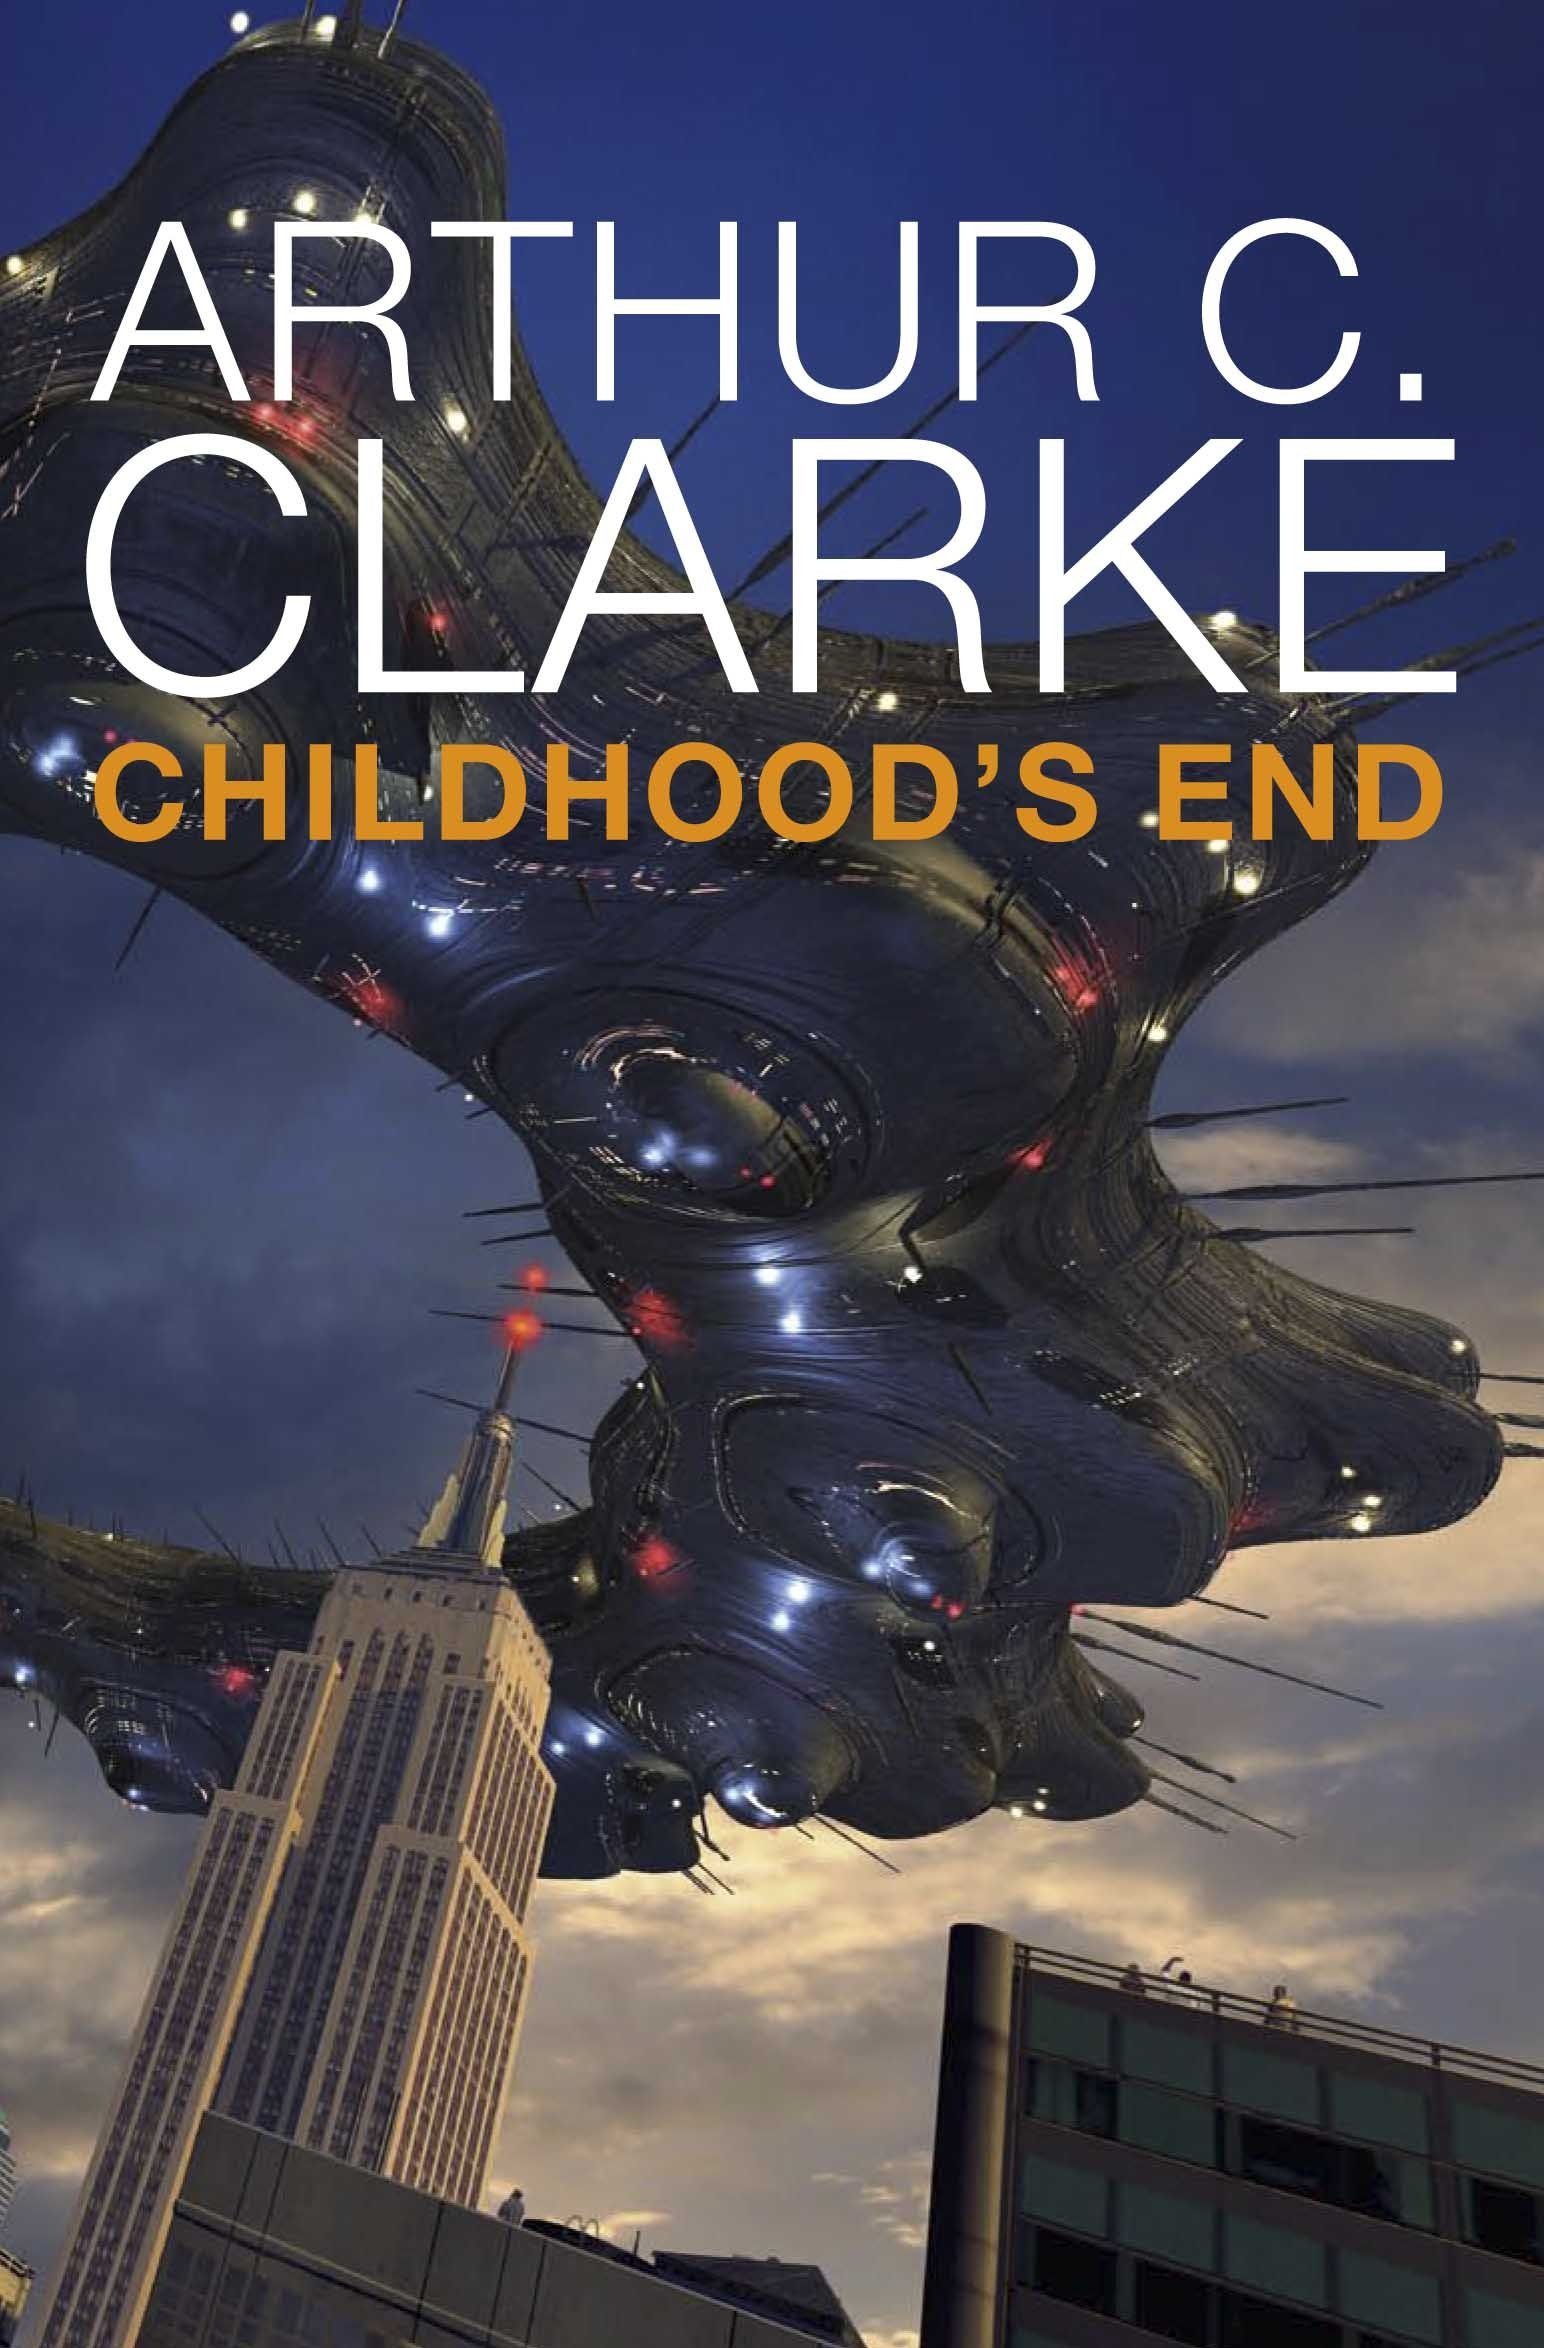 childhoods end review